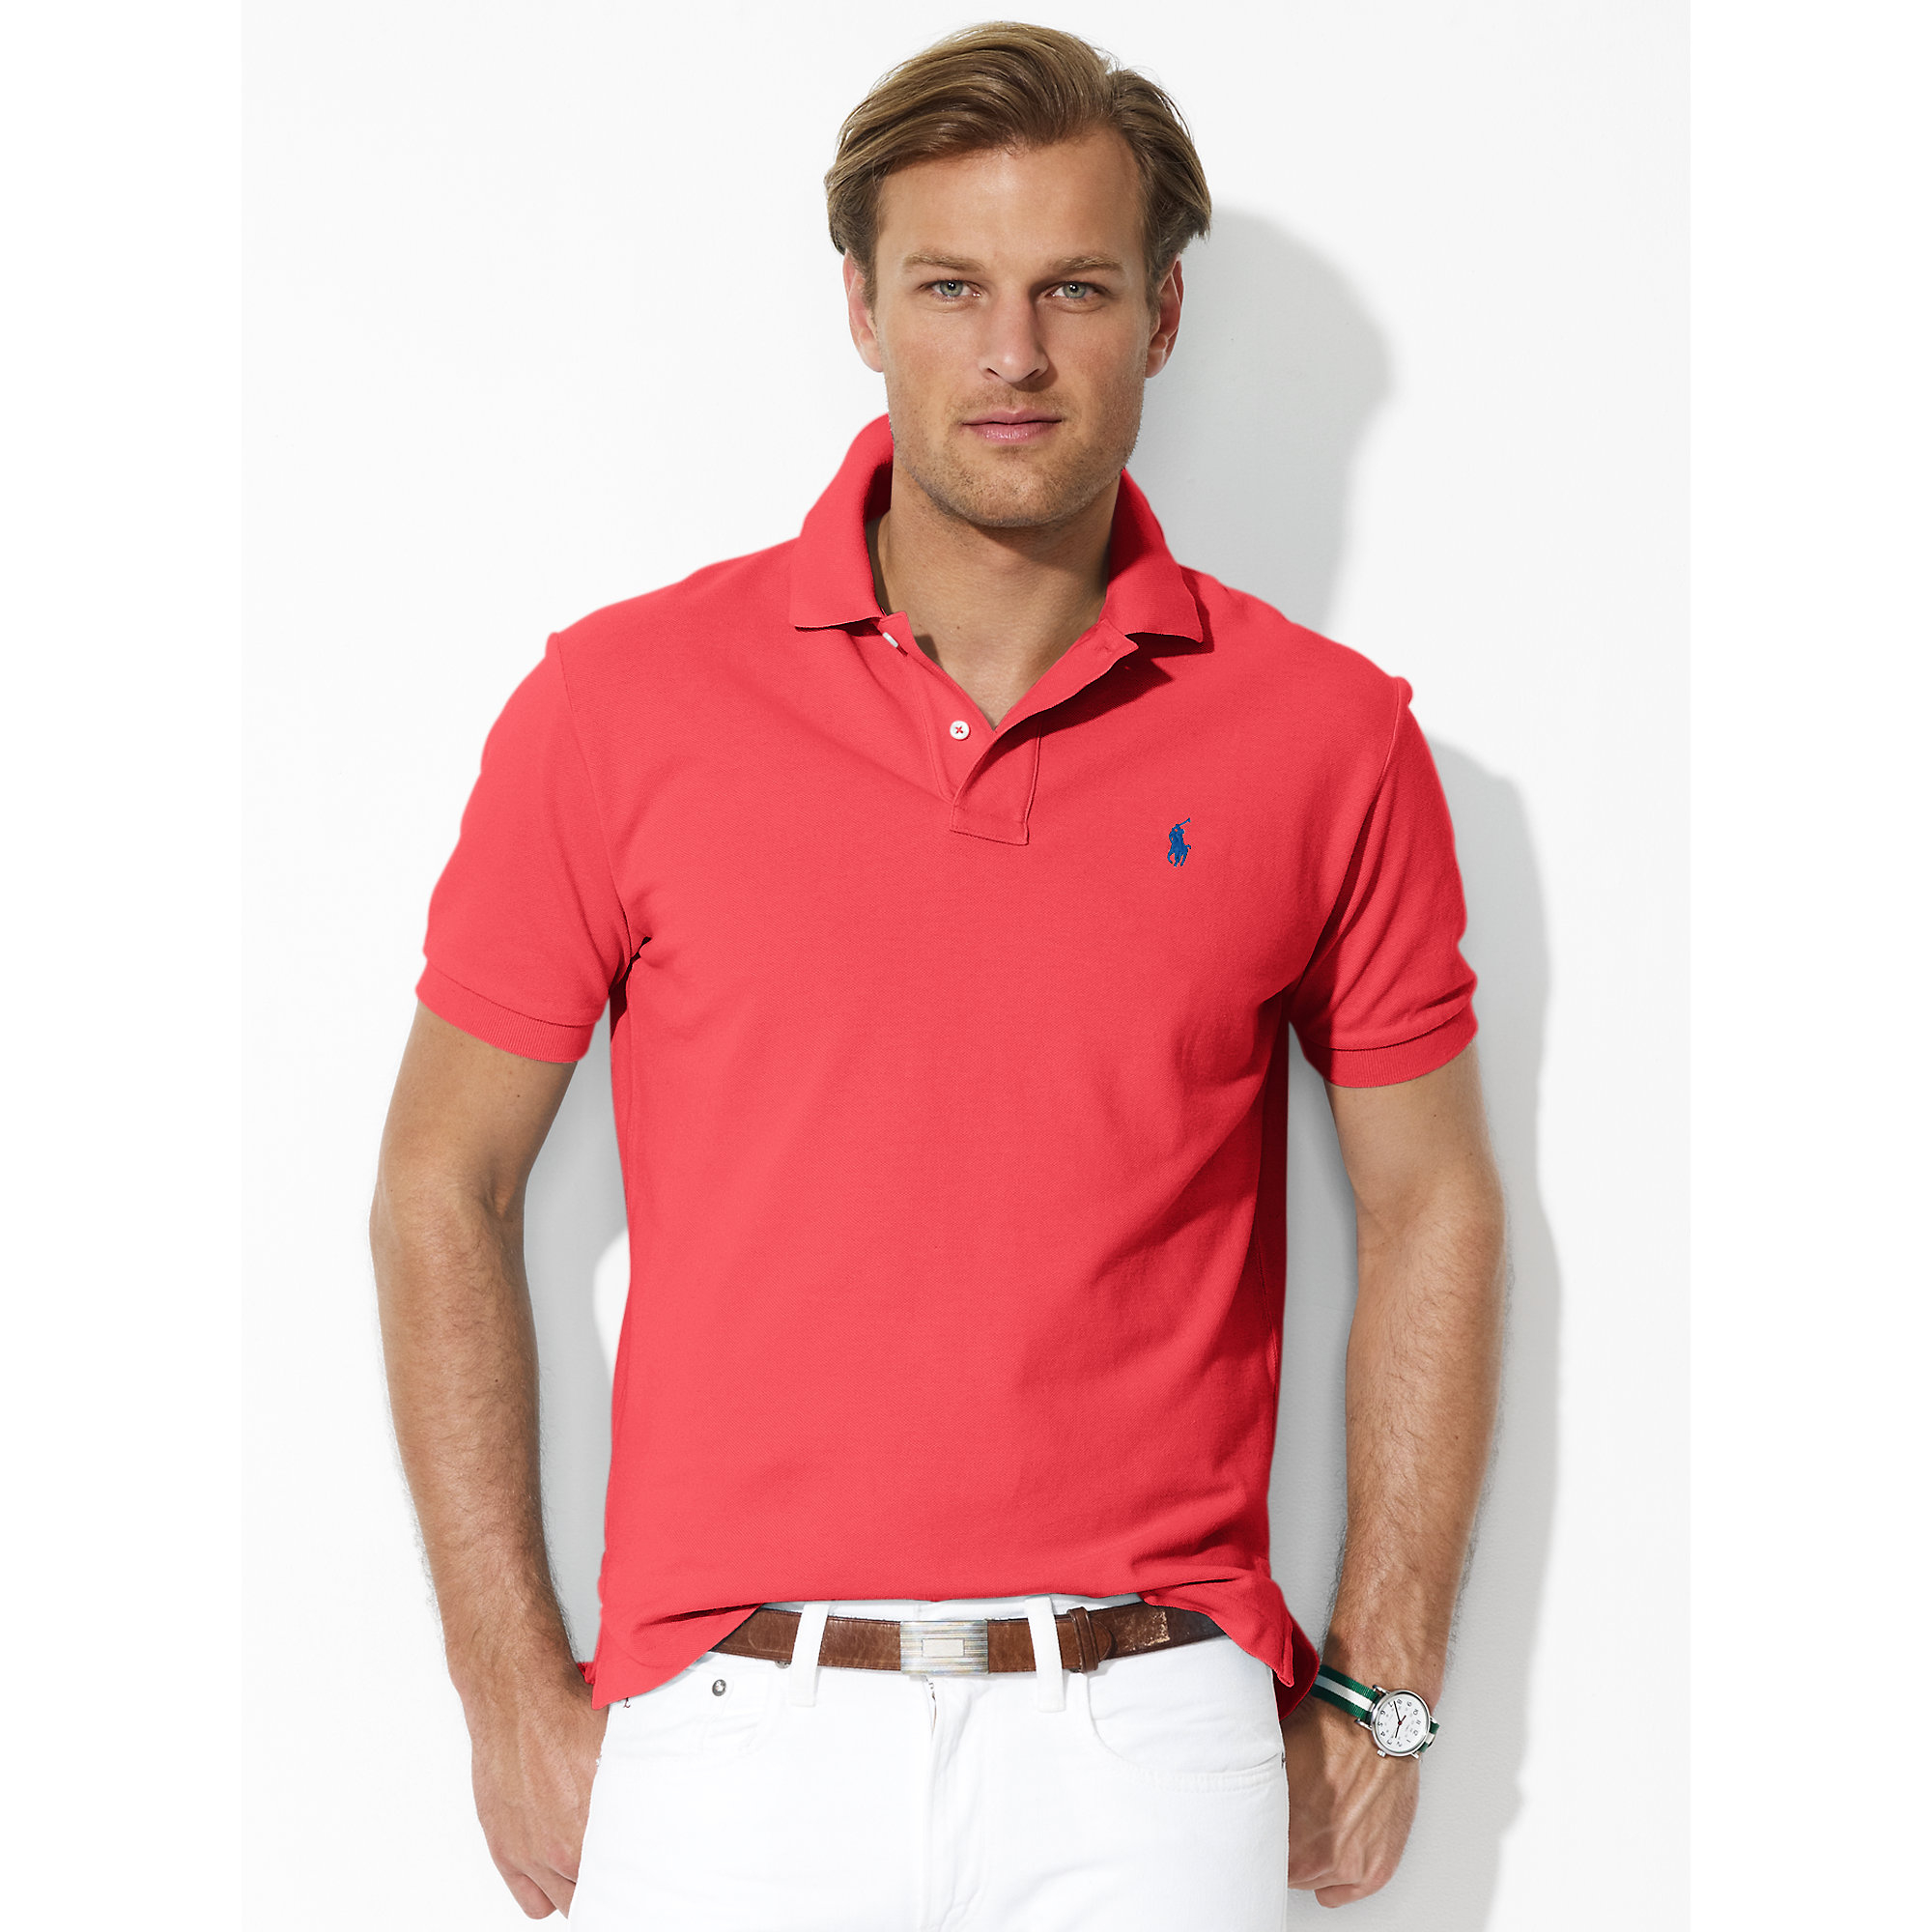 753d93b27 Polo Ralph Lauren Classic-fit Mesh Polo in Pink for Men - Lyst